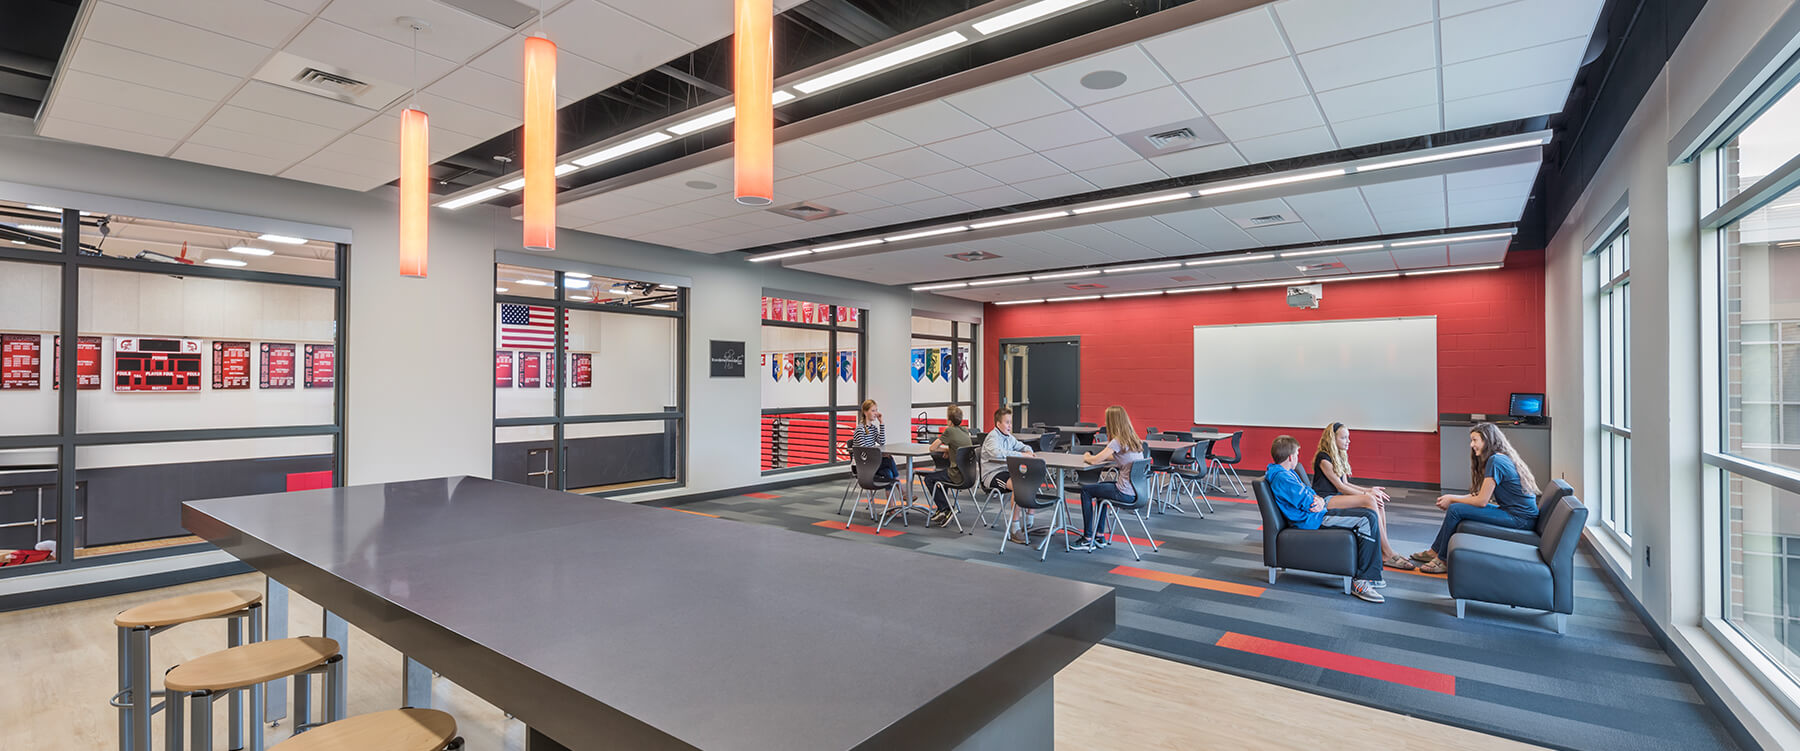 Timothy Christian Middle School gathering room